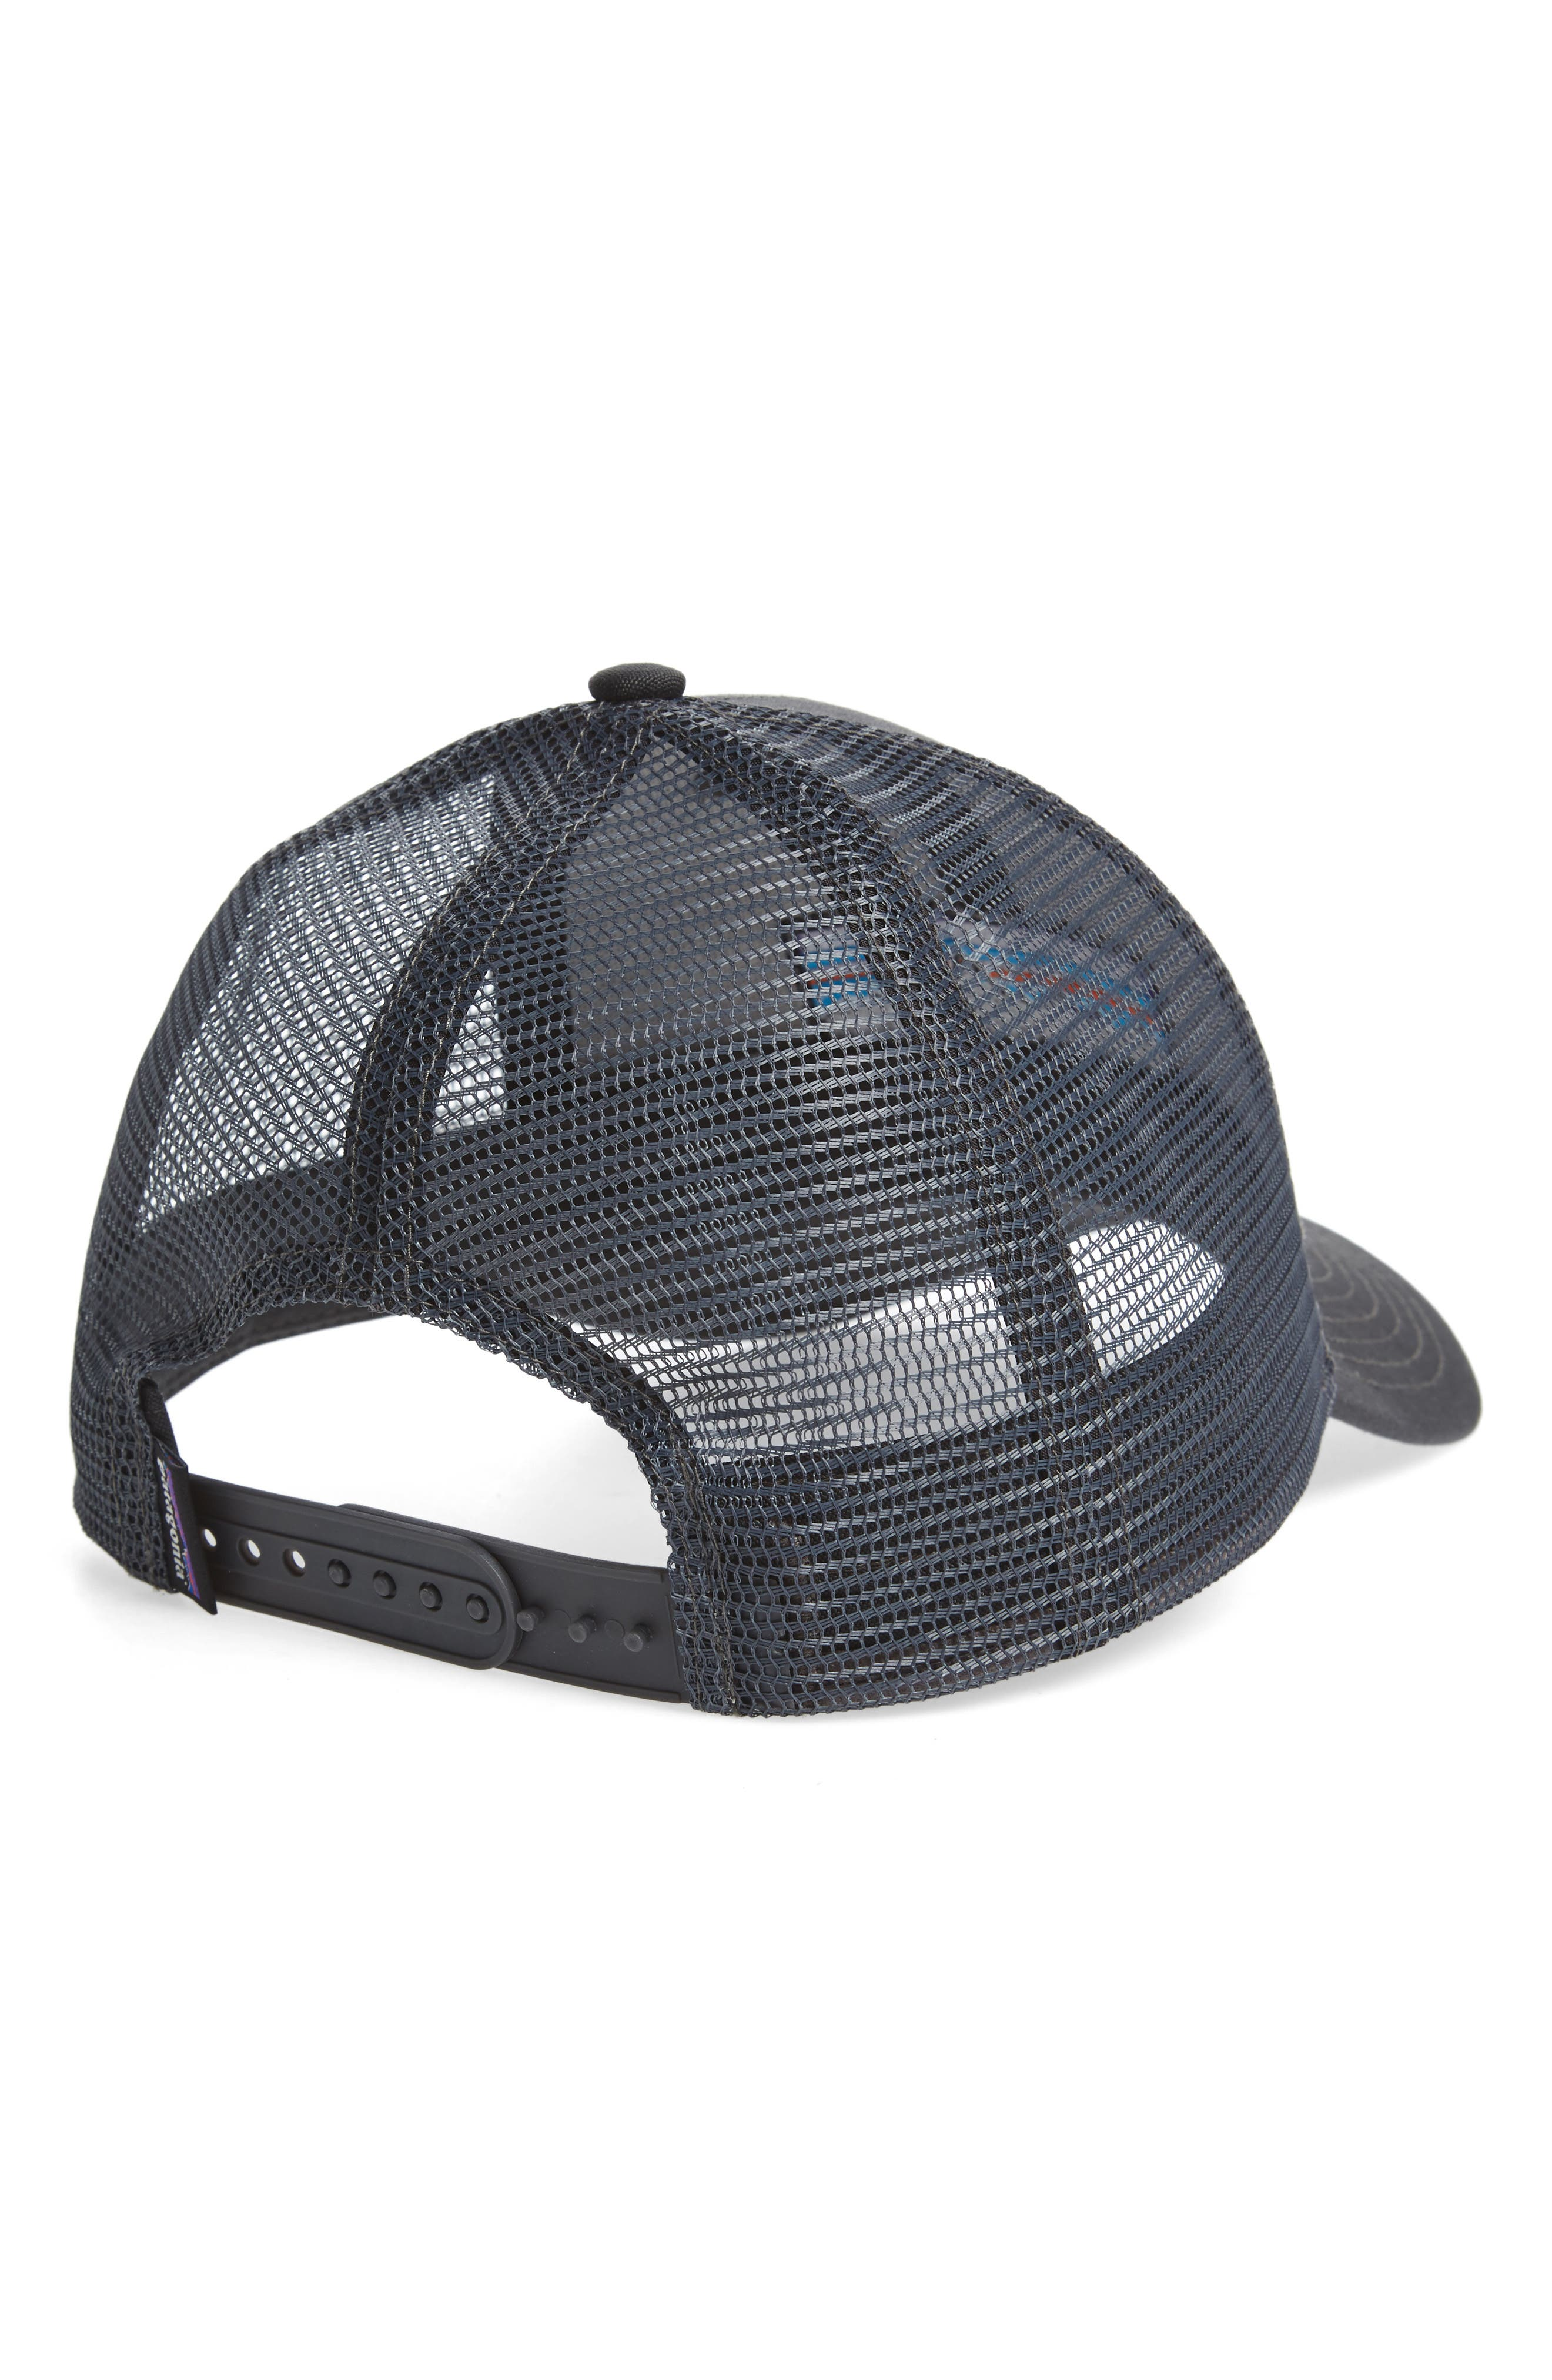 'PG - Lo Pro' Trucker Hat,                             Alternate thumbnail 2, color,                             FORGE GREY/ FORGE GREY